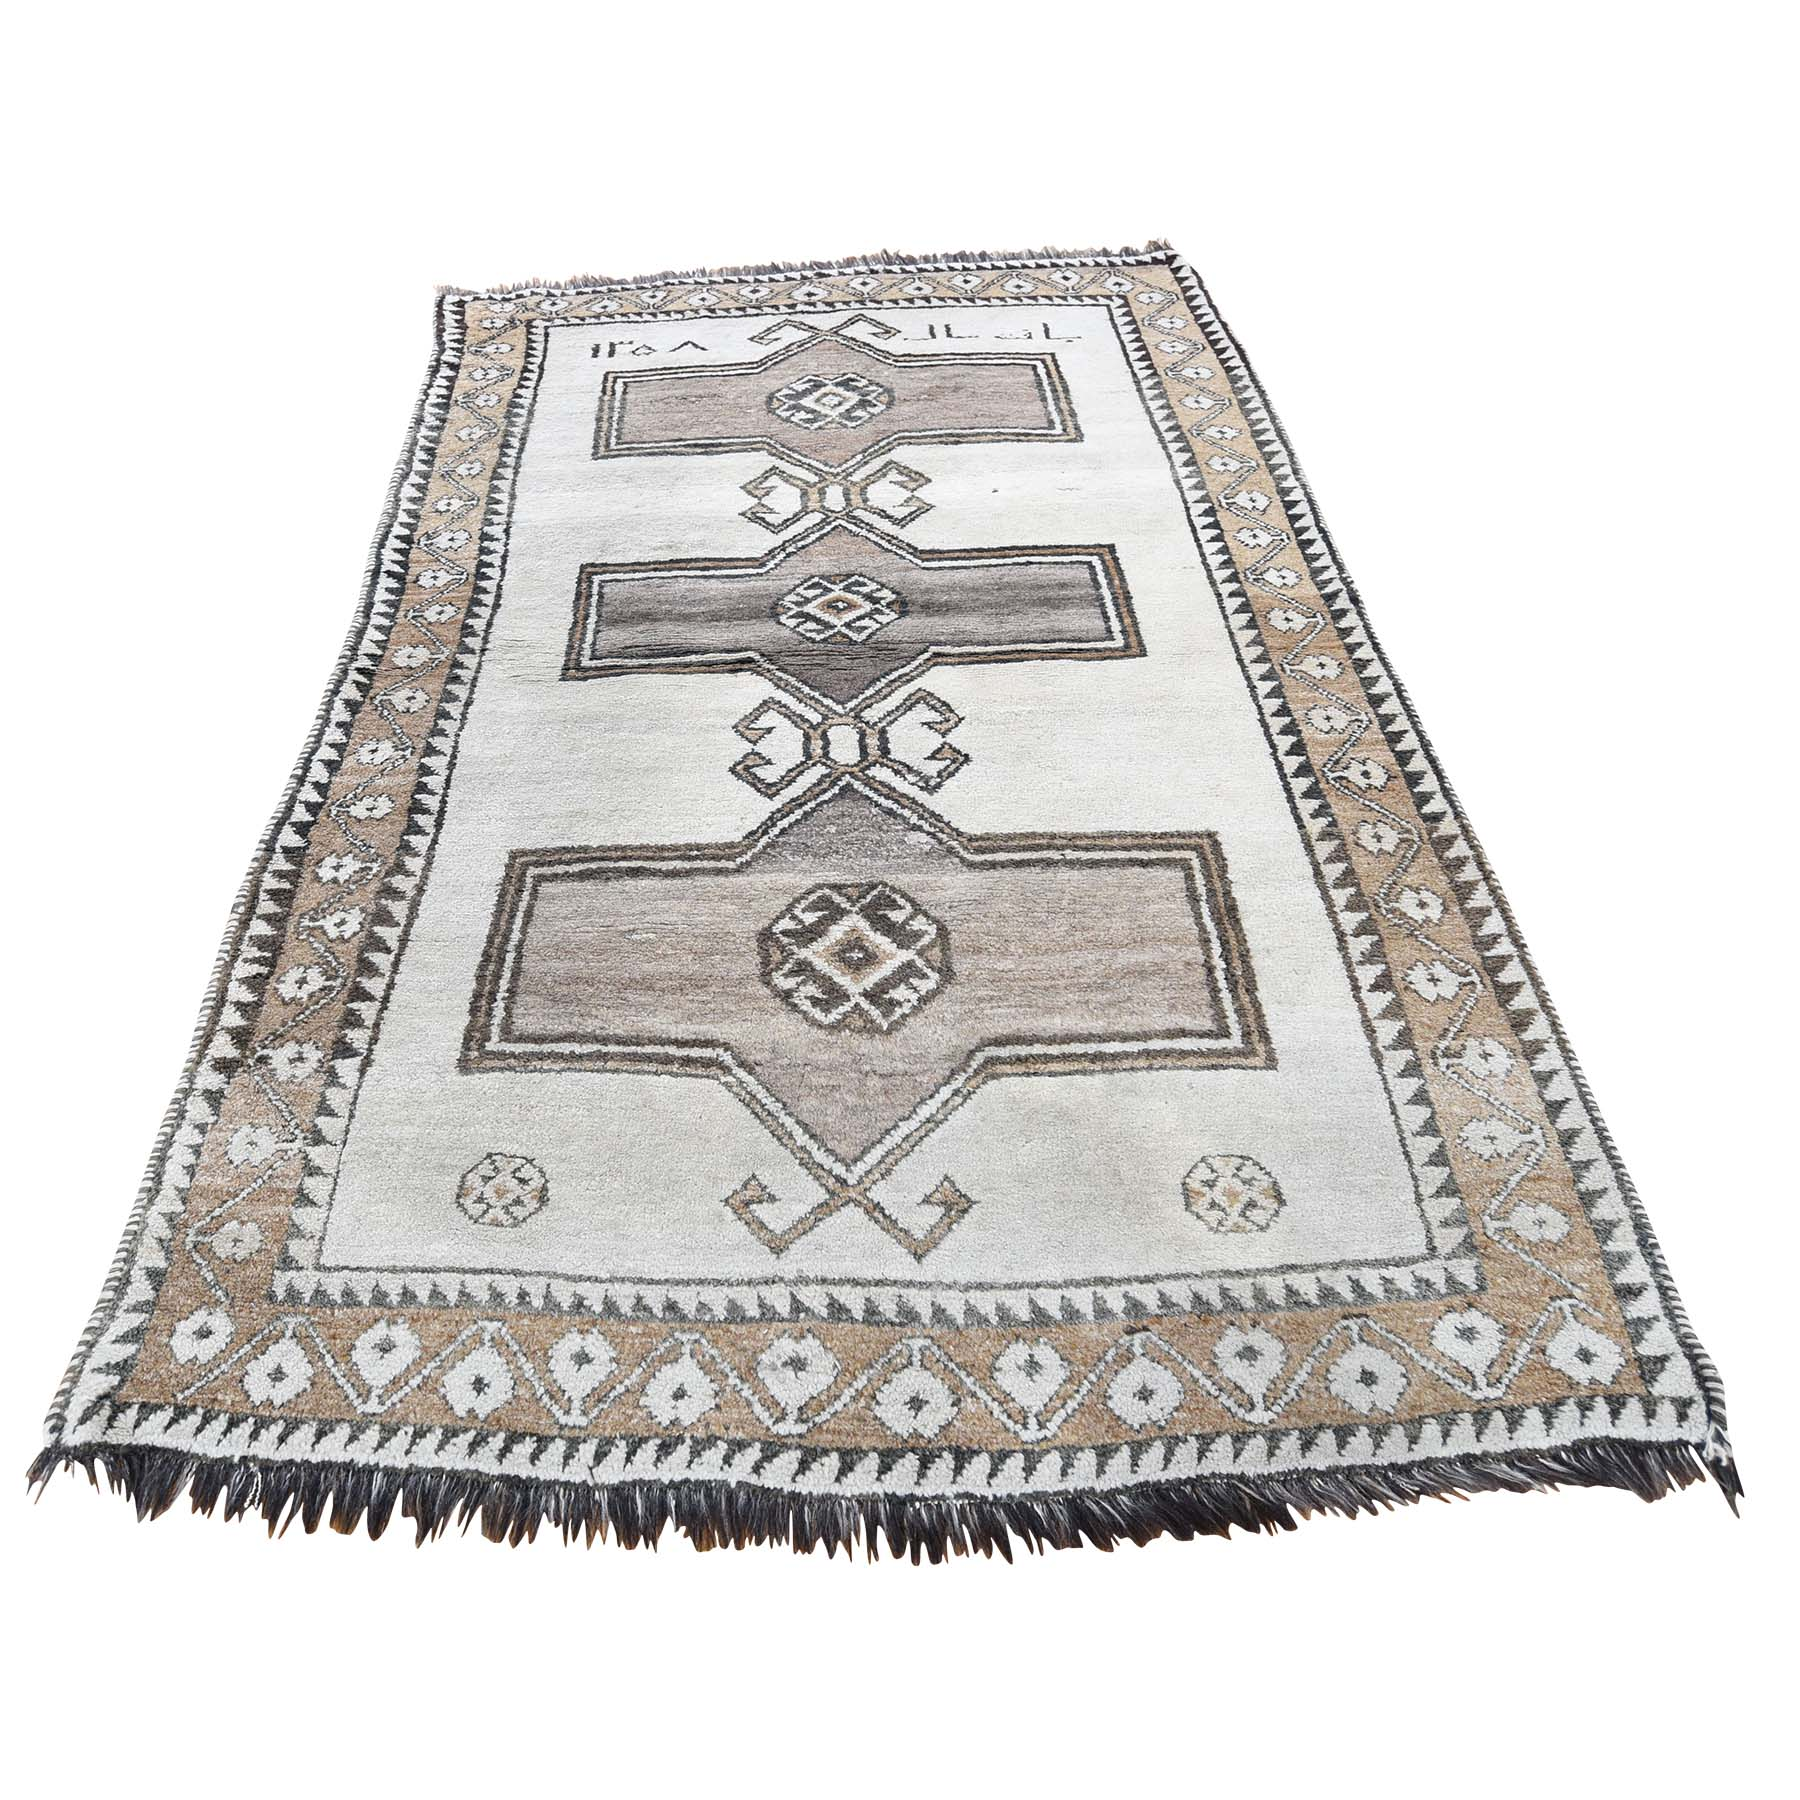 Nomadic And Village Collection Hand Knotted Ivory Rug No: 182434